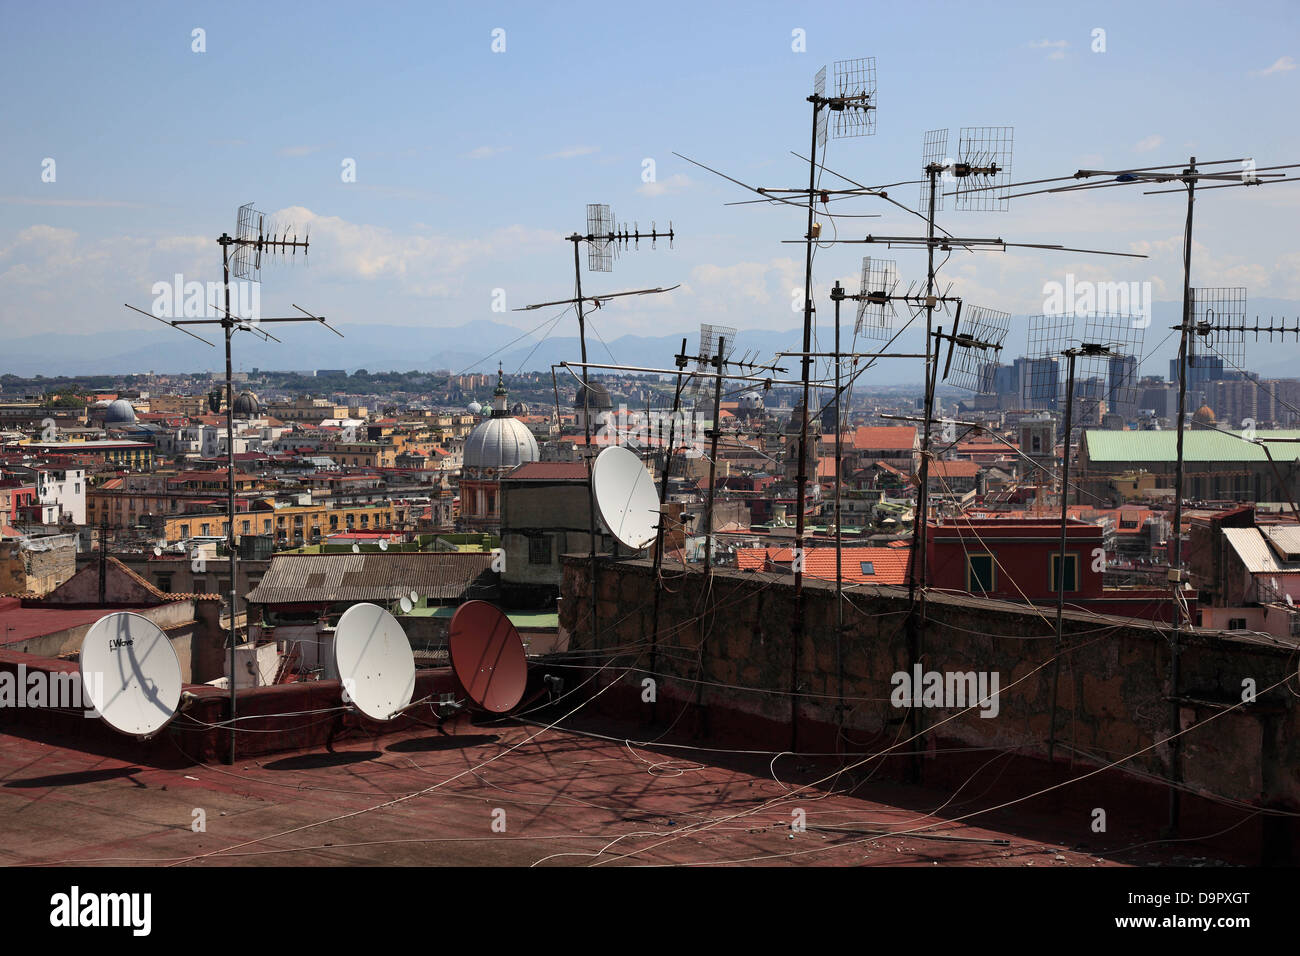 View from Vomero hill on the antennae of the city of Naples, Campania, Italy - Stock Image